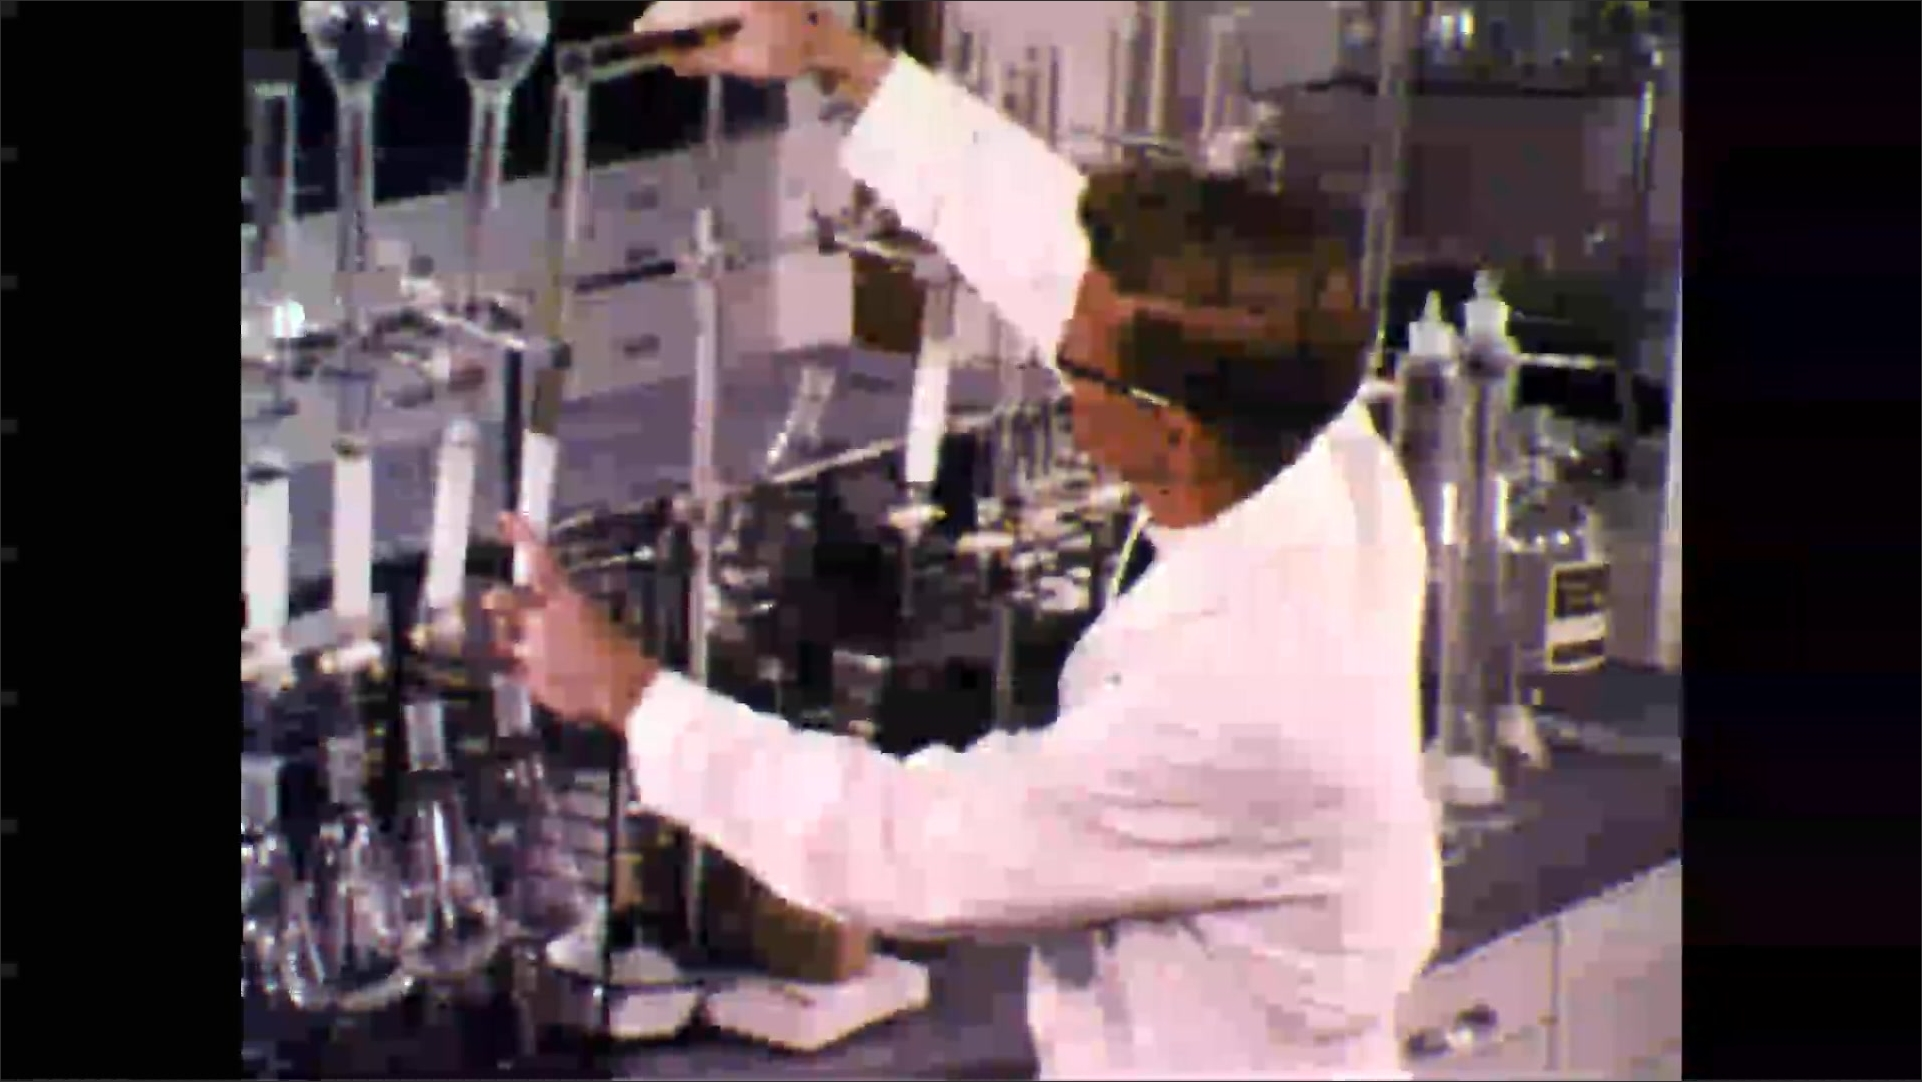 1960s: Chemistry lab, racks of glassware, man in lab coat pours liquid into glass column, removes flask.